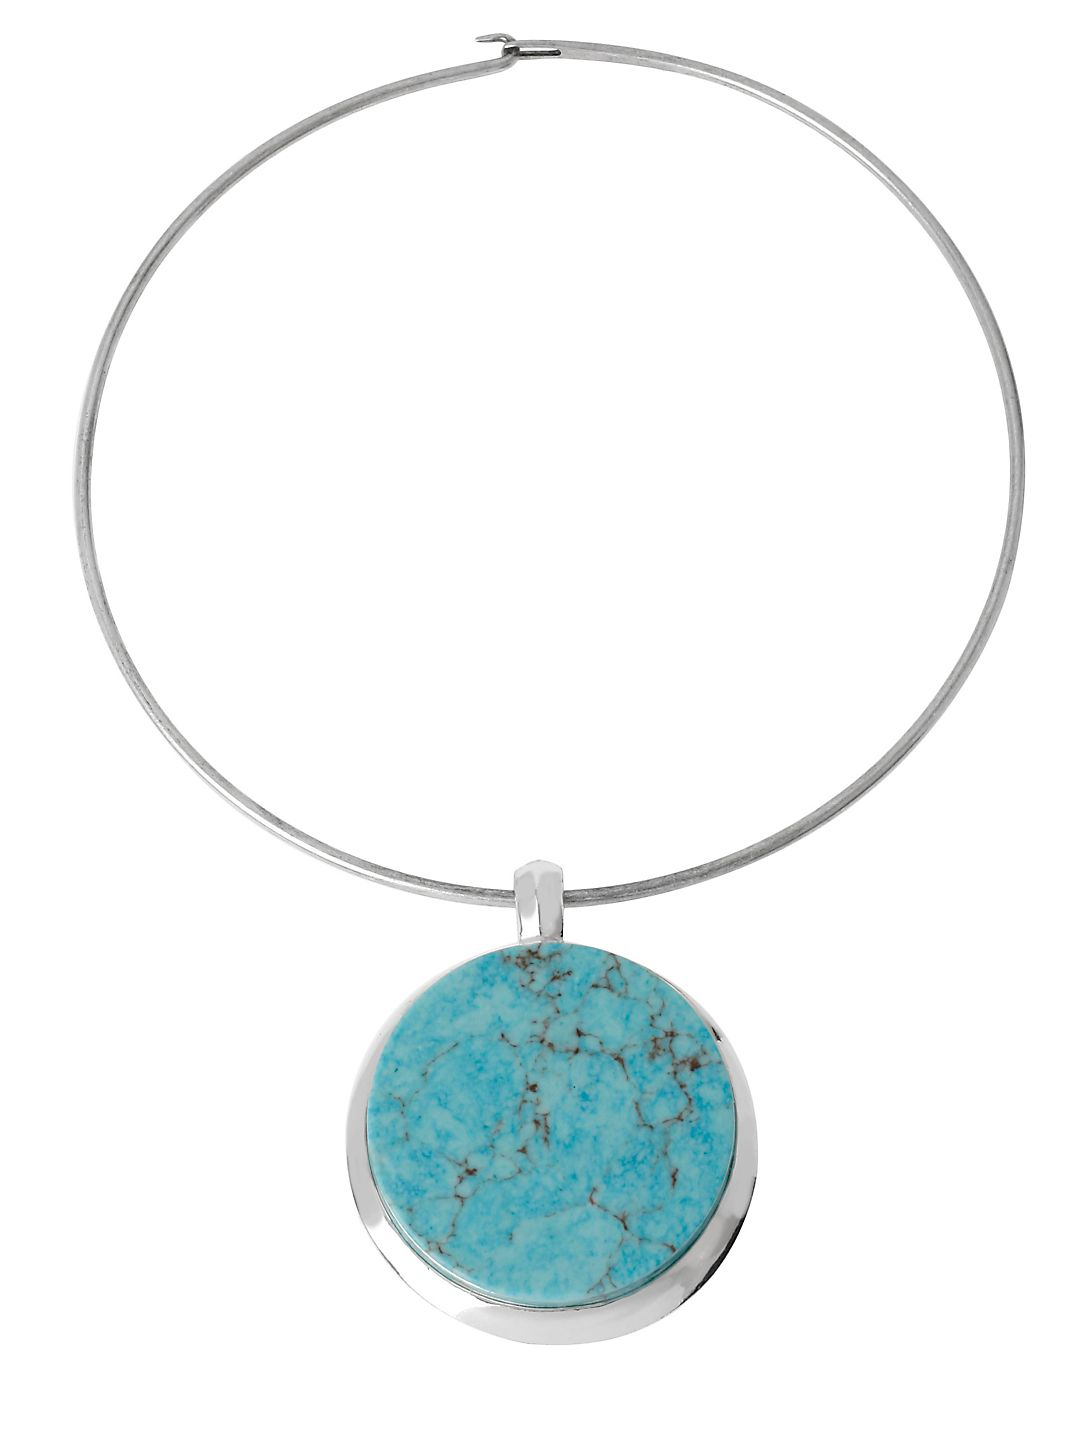 Semiprecious Turquoise Pendant Necklace